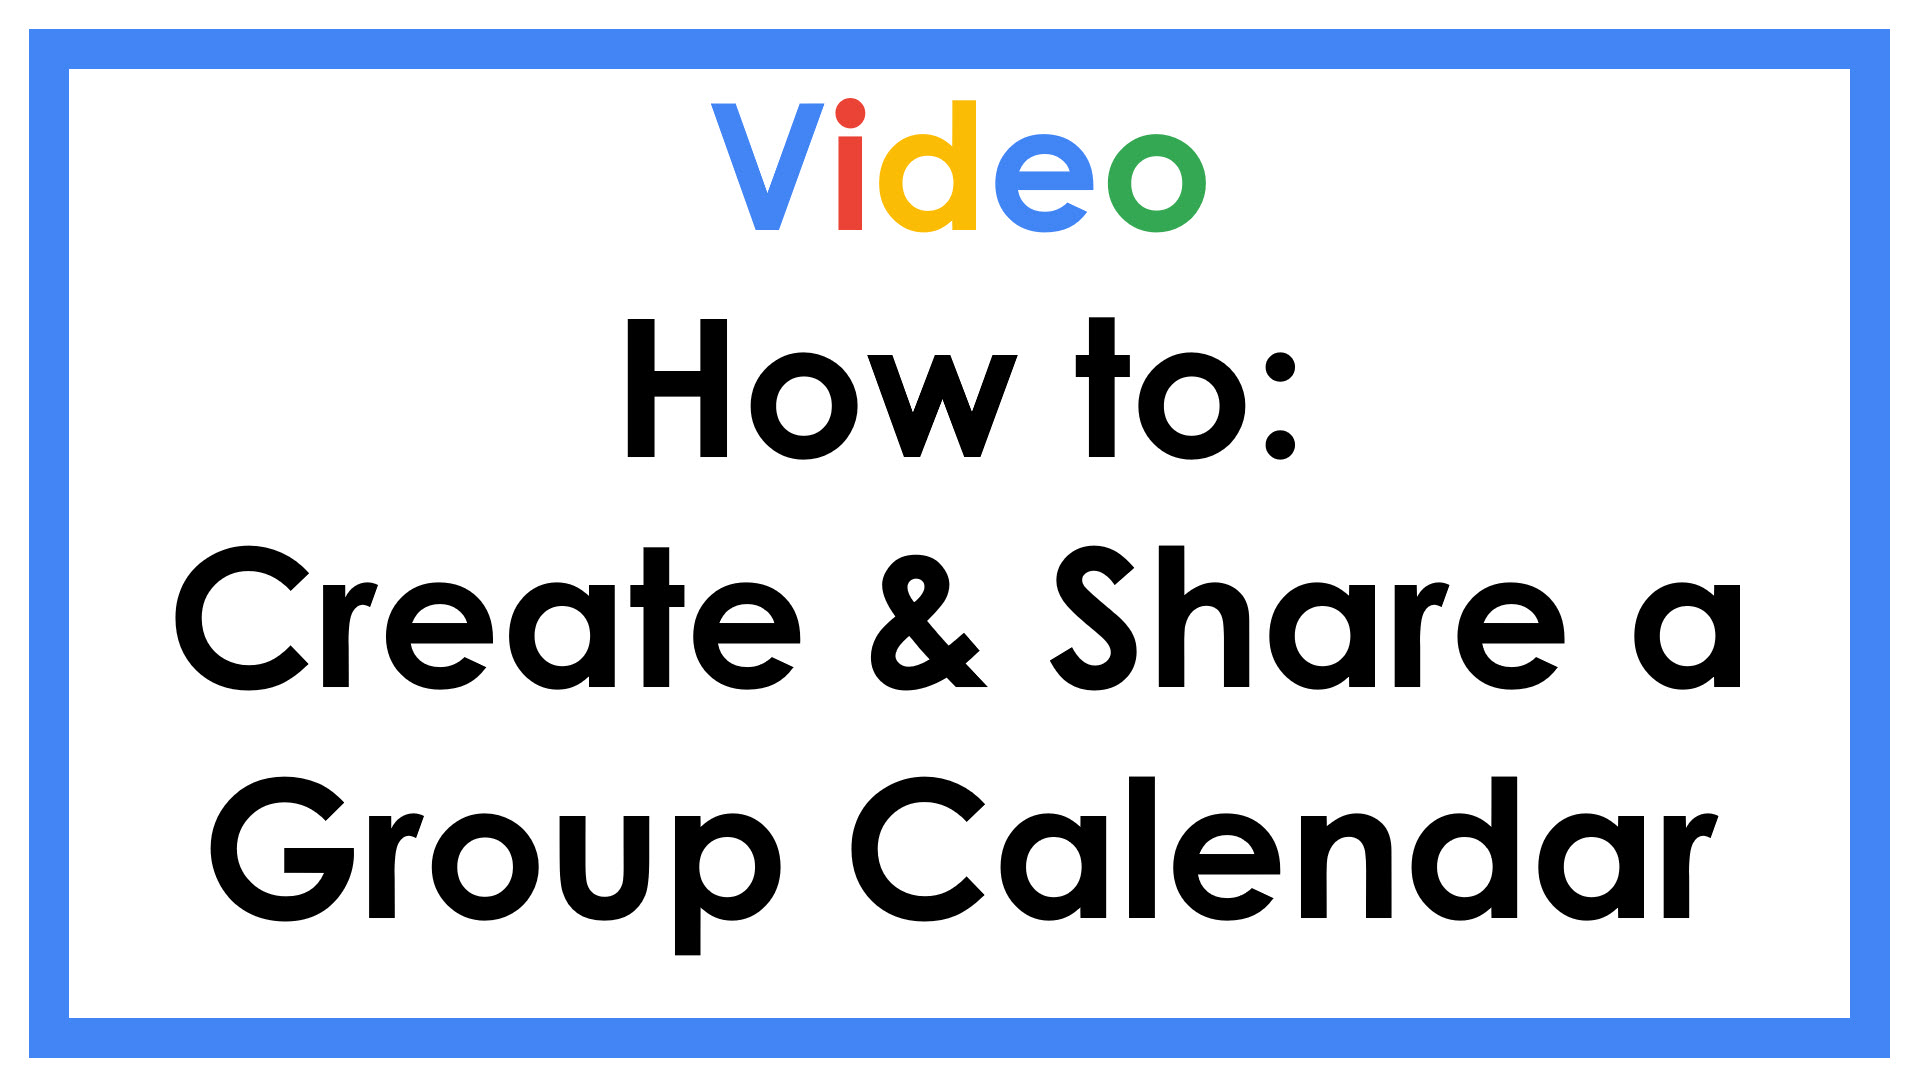 How to Create & Share a Group Calendar